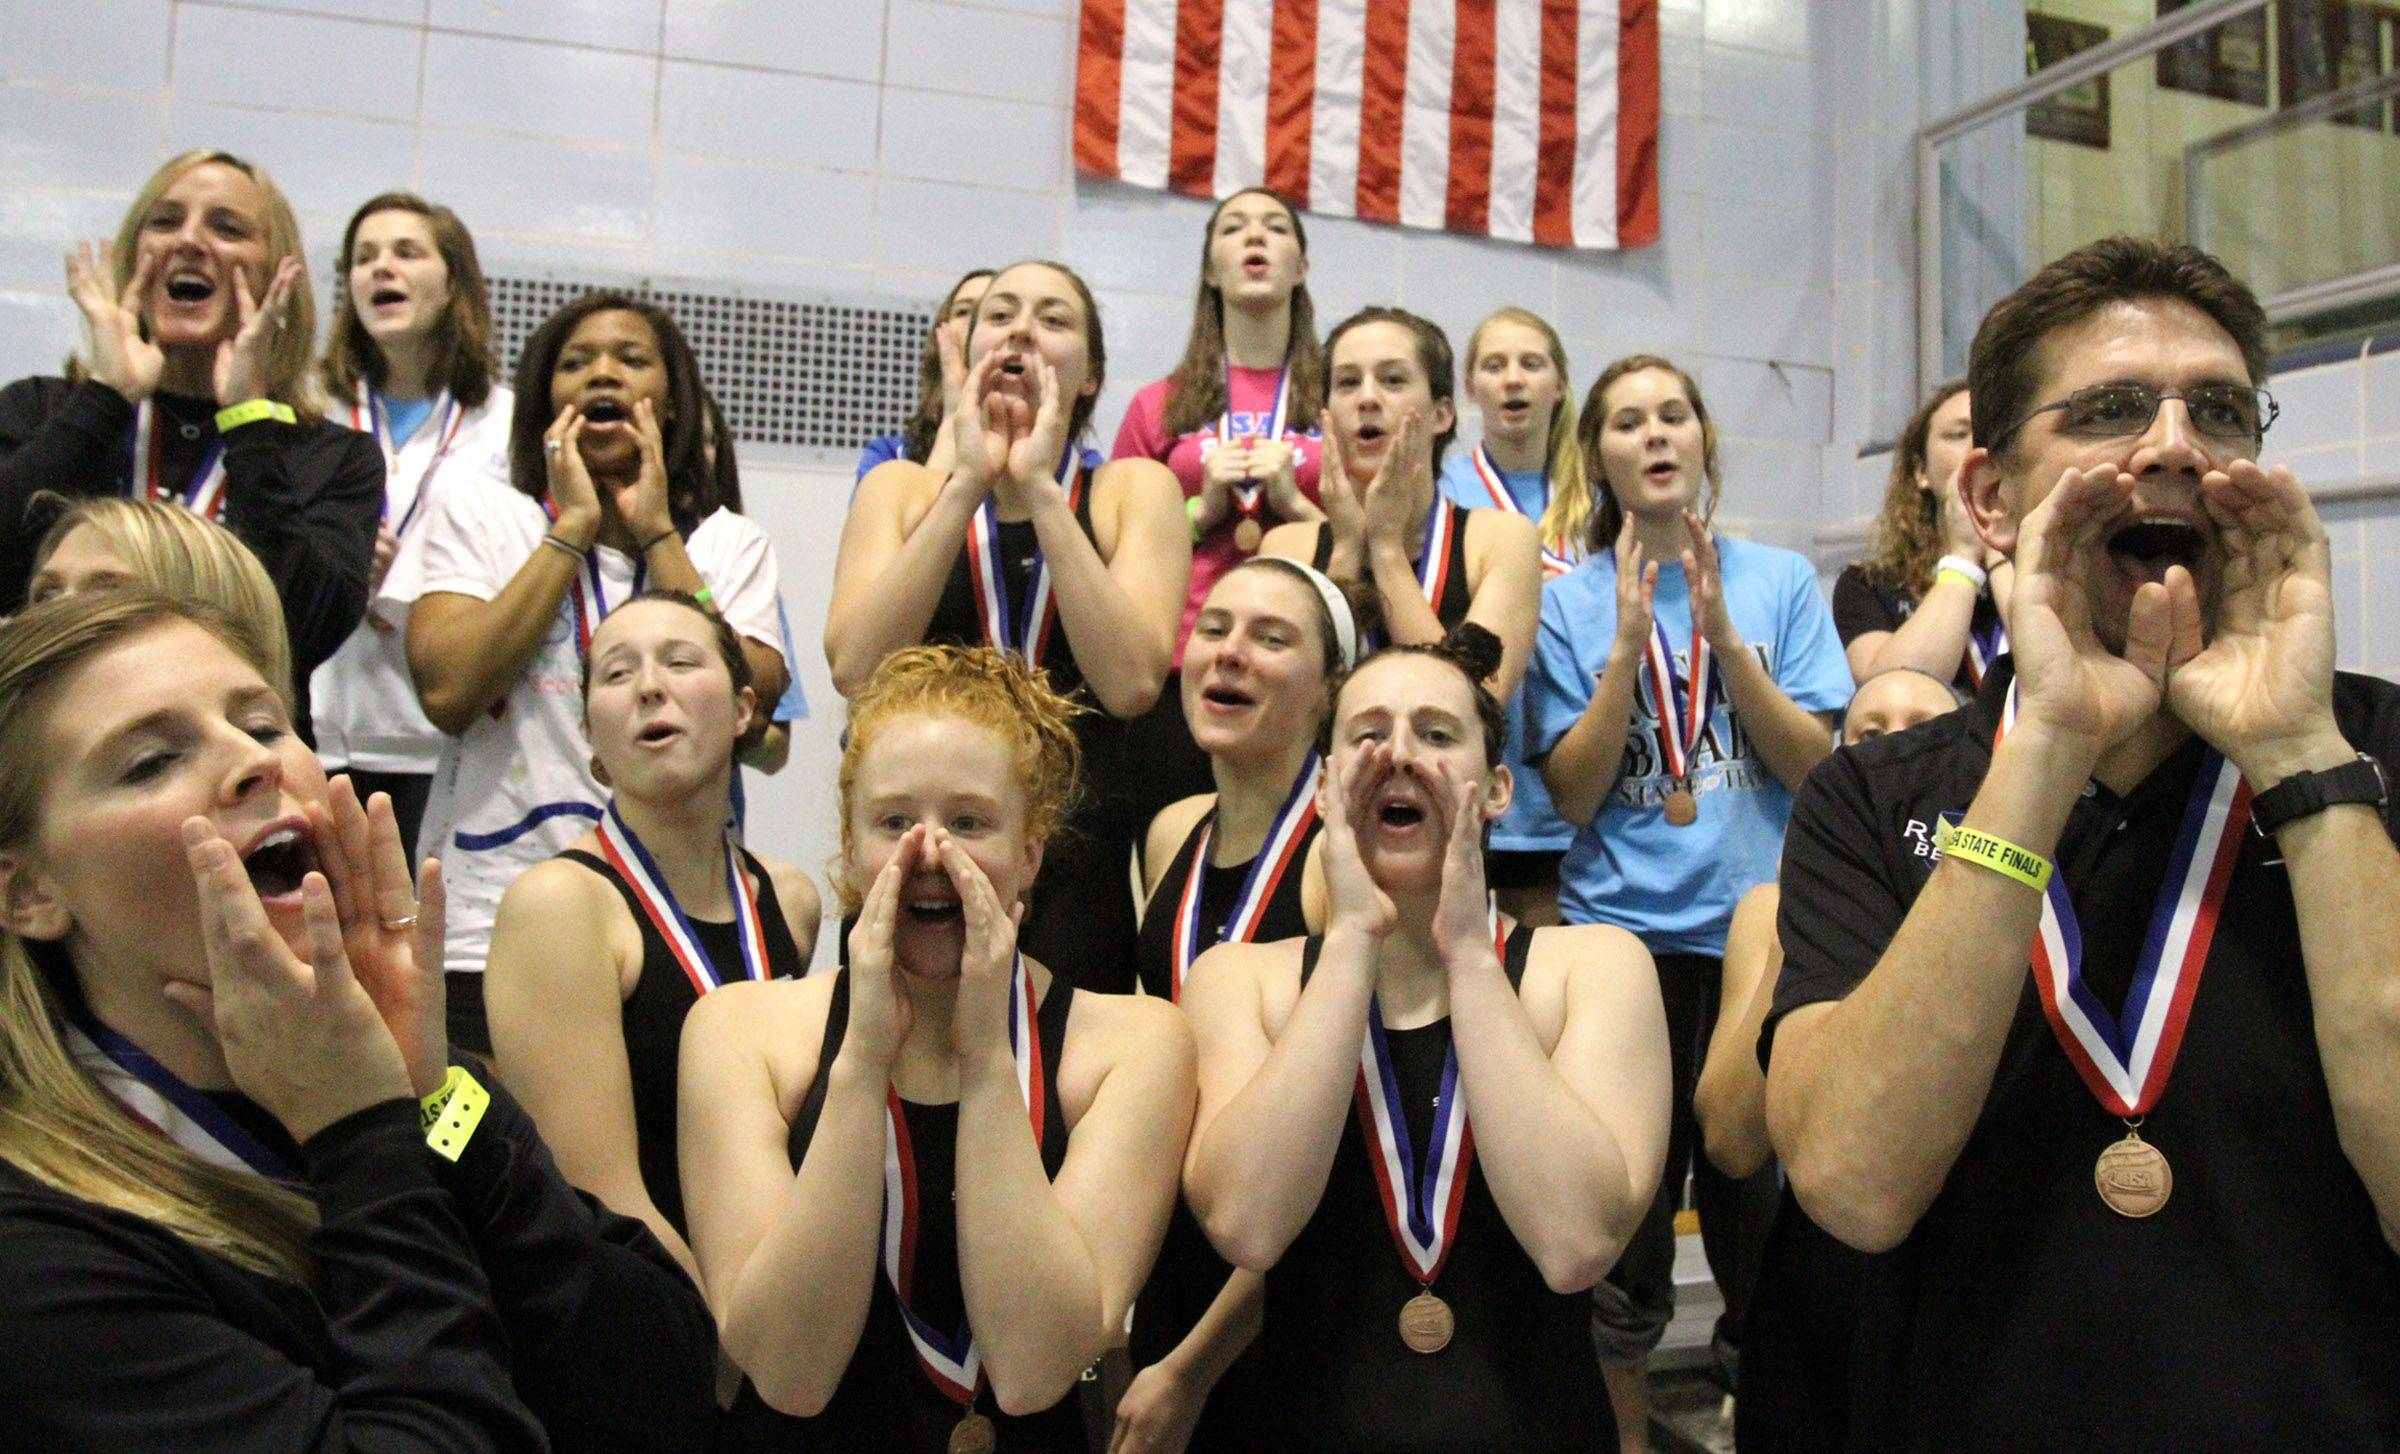 The Rosary swim team, after placing third in state, cheer on the first and second place teams at the IHSA state championships in Winnetka on Saturday, November 19th.